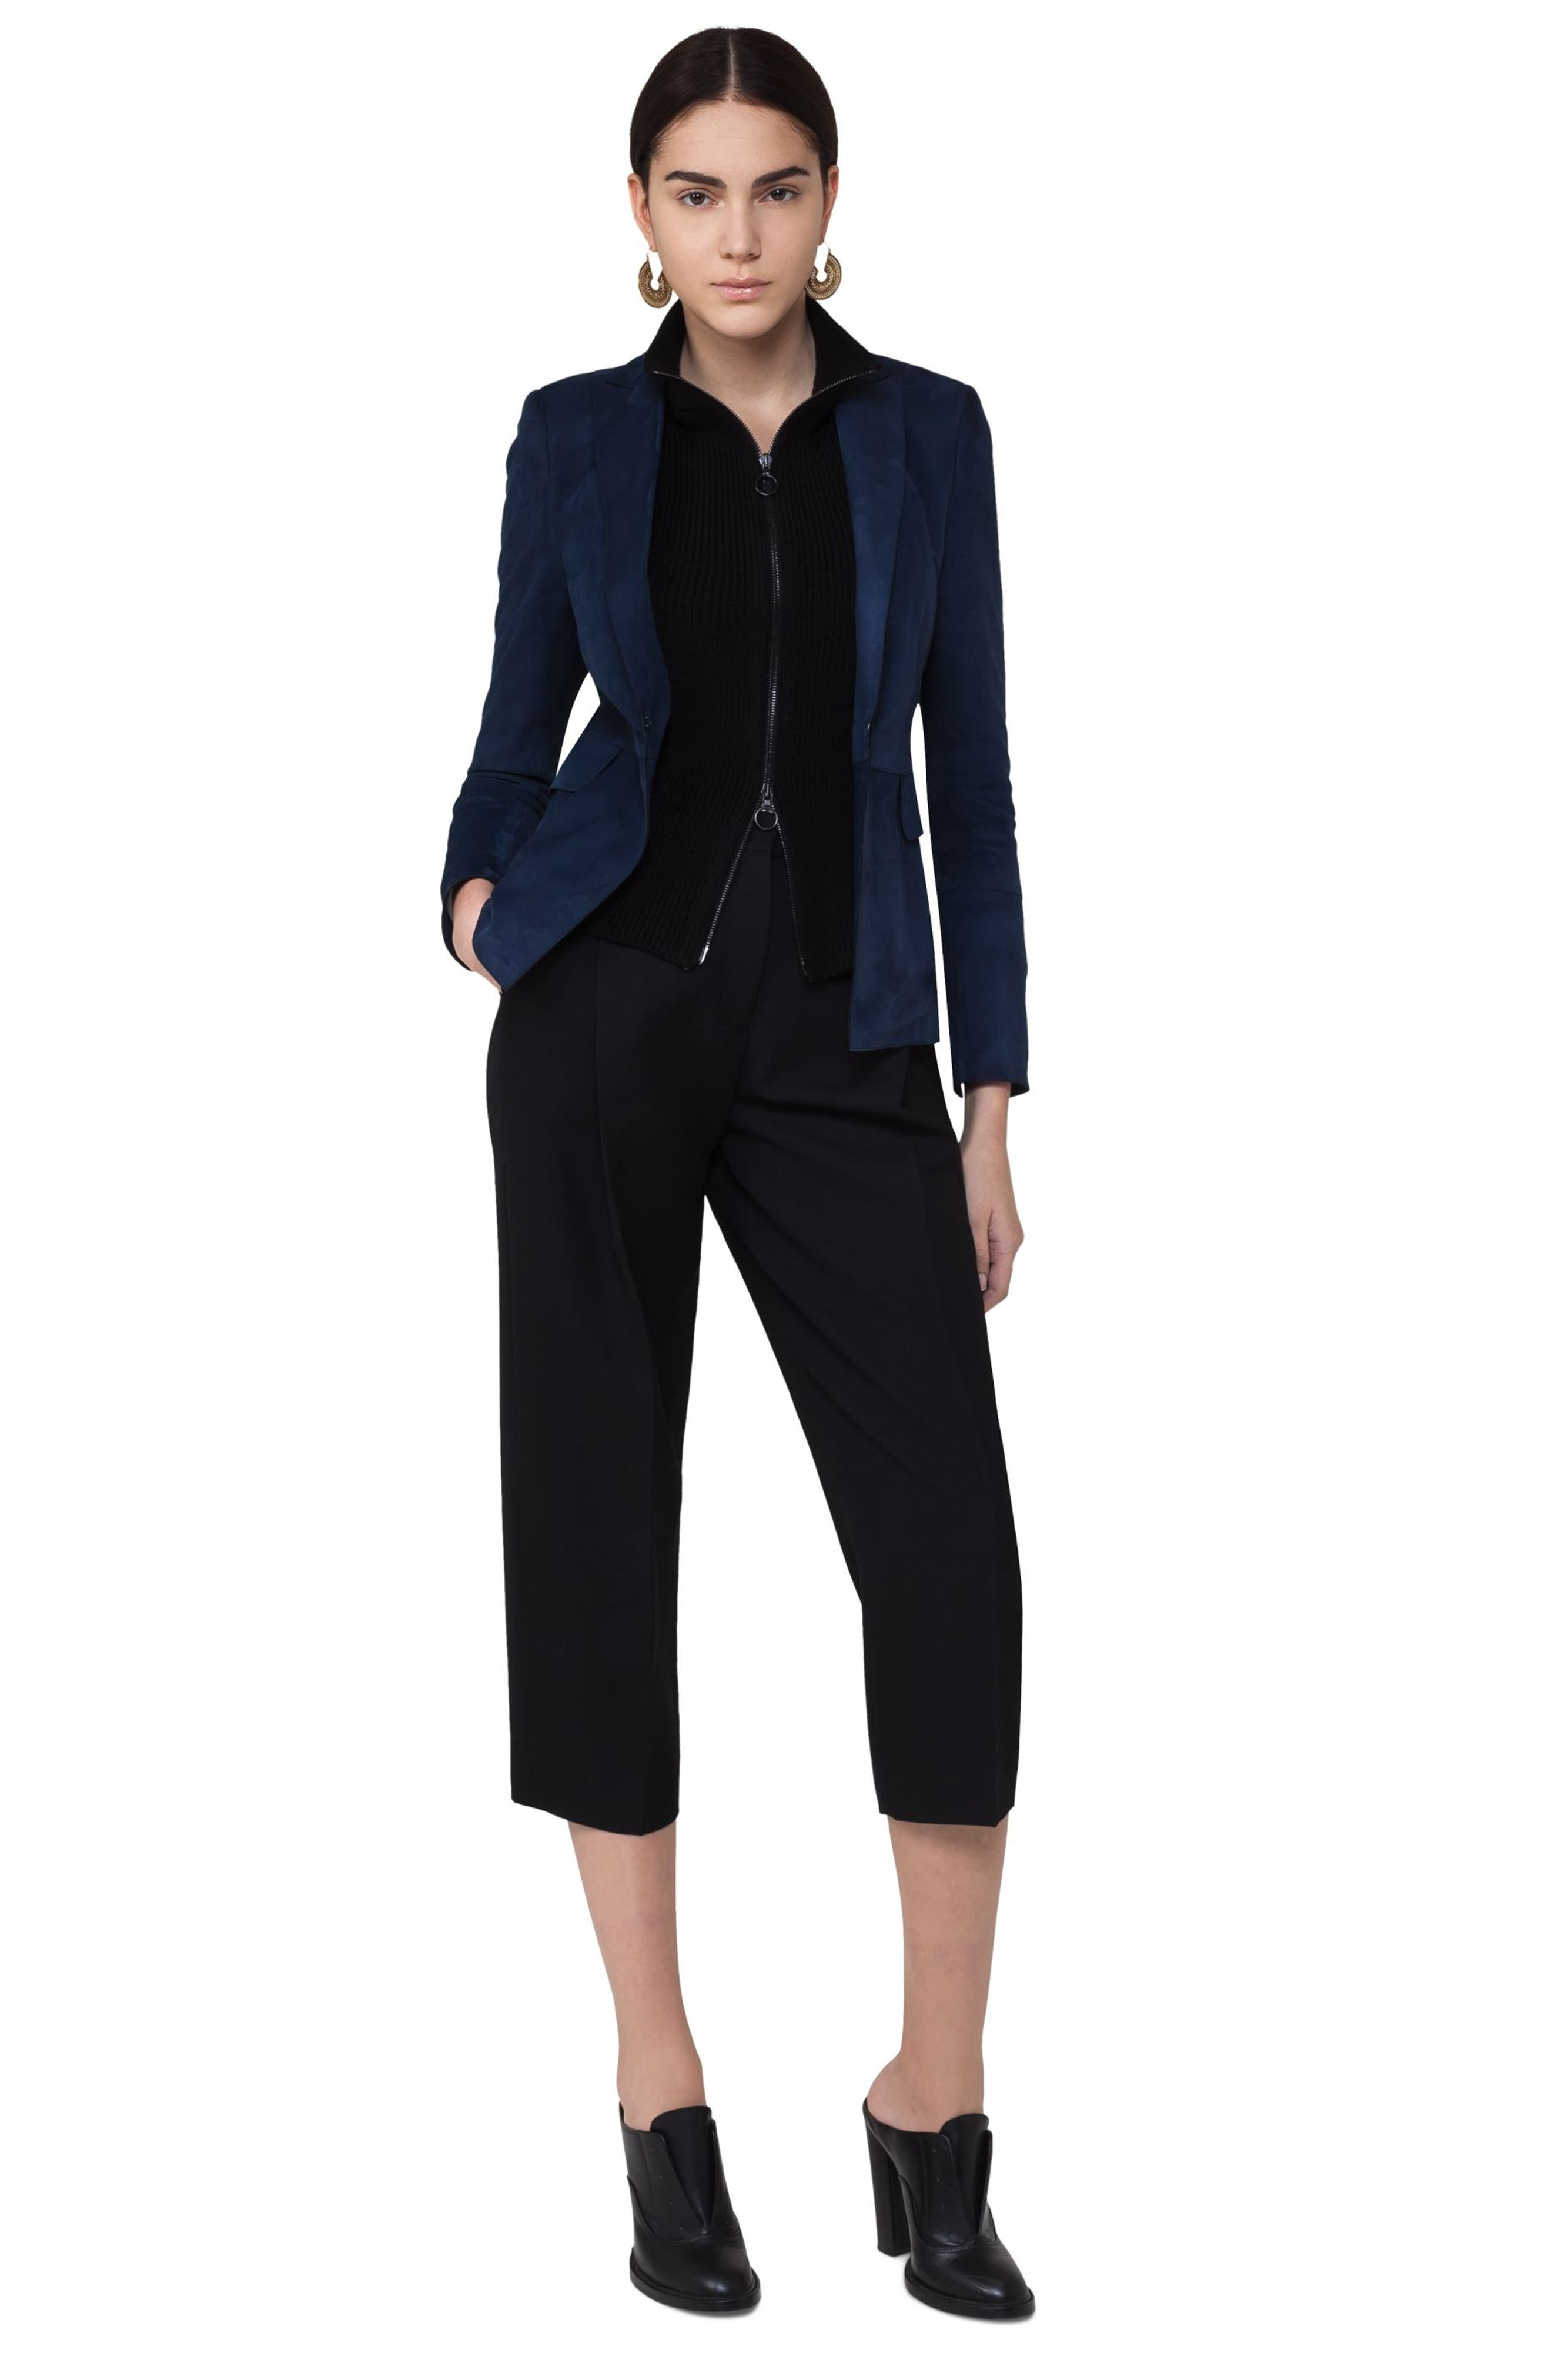 Suede Blazer with Removable Knit Insert,                             Alternate thumbnail 4, color,                             400